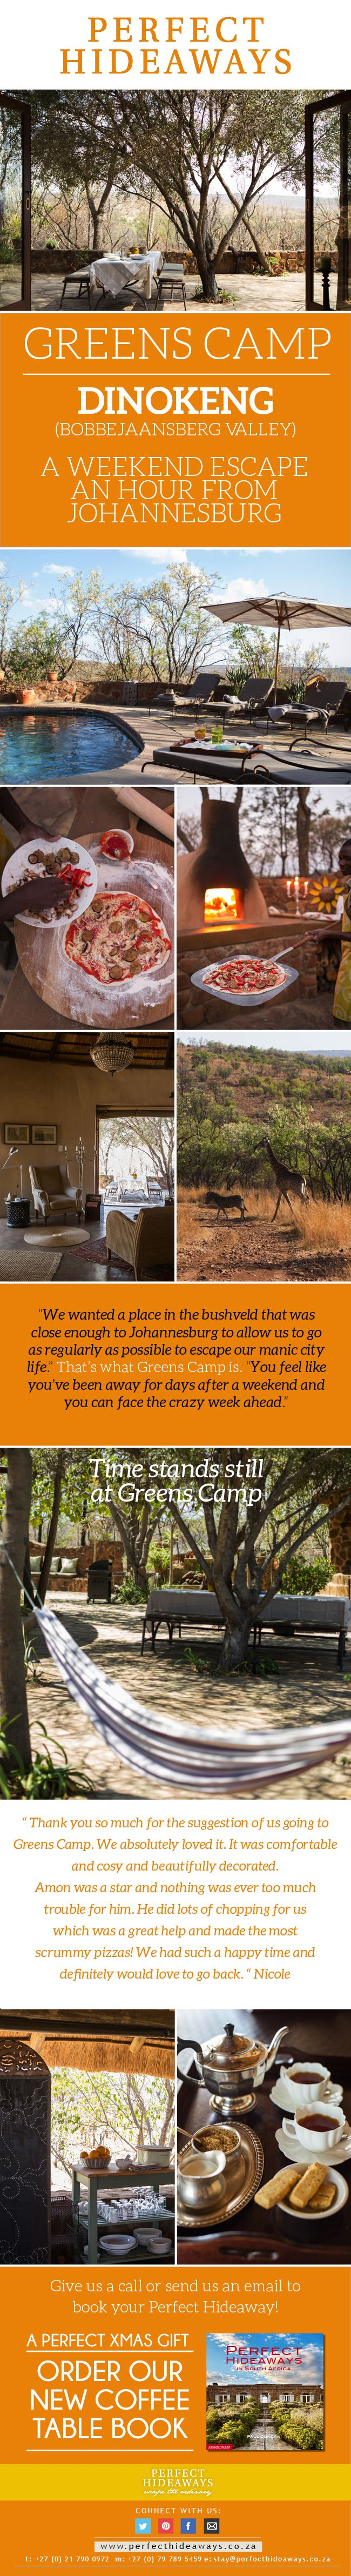 http://www.perfecthideaways.co.za/Details/Greens-Camp